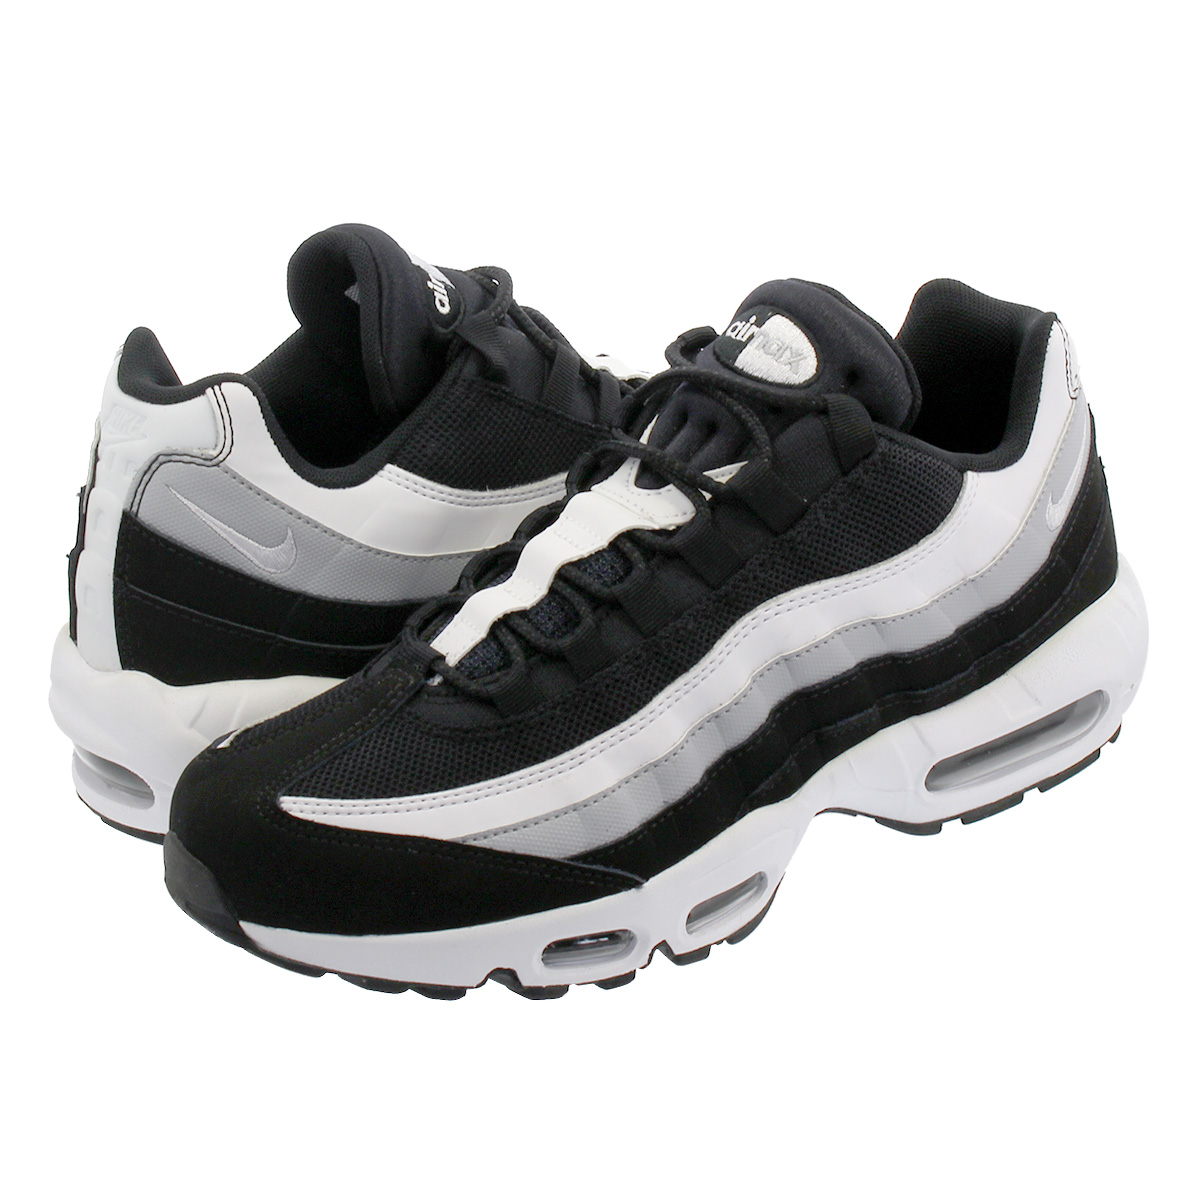 the best attitude 9ee99 a7373 NIKE AIR MAX 95 ESSENTIAL Kie Ney AMAX 95 essential BLACK/WHITE/WOLF GREY  749,766-038